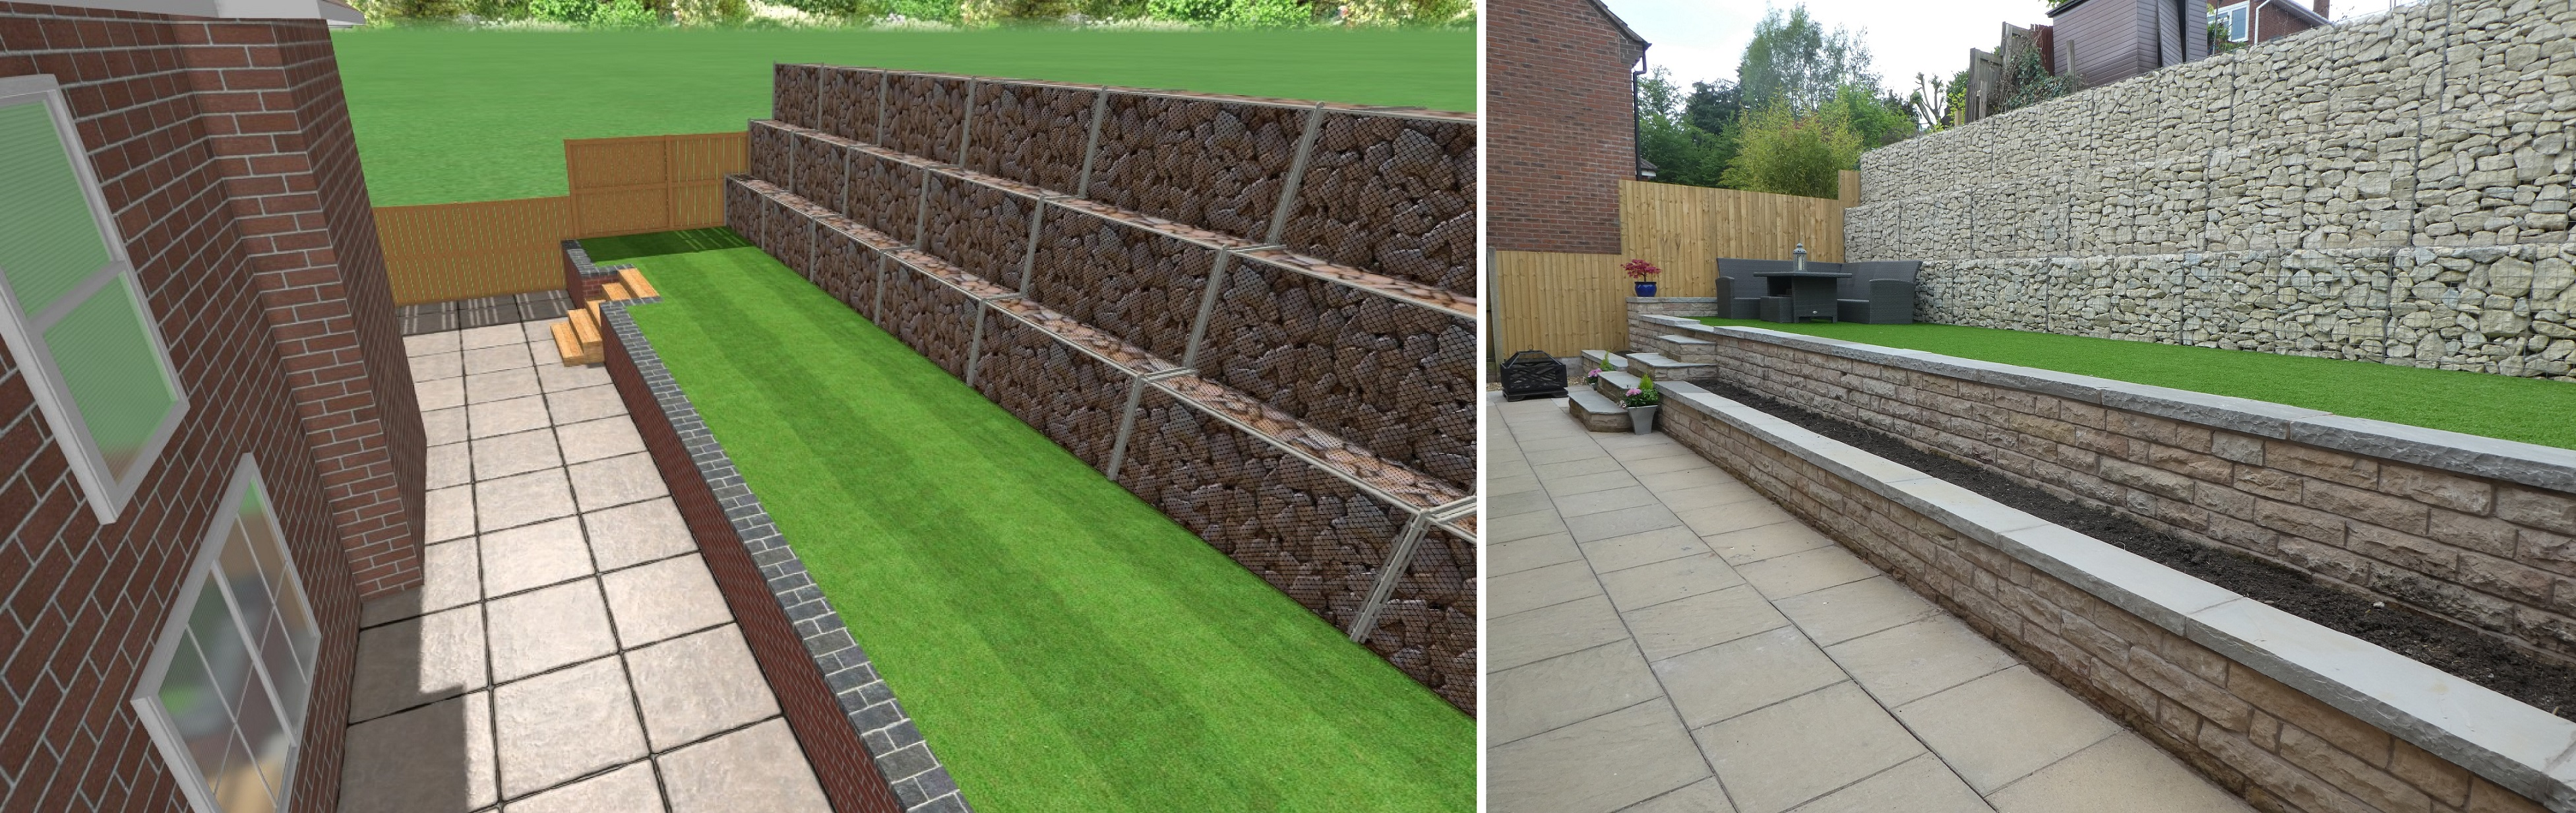 Landscaping in Loggerheads - 3D CAD Drawing and Completed Landscaping